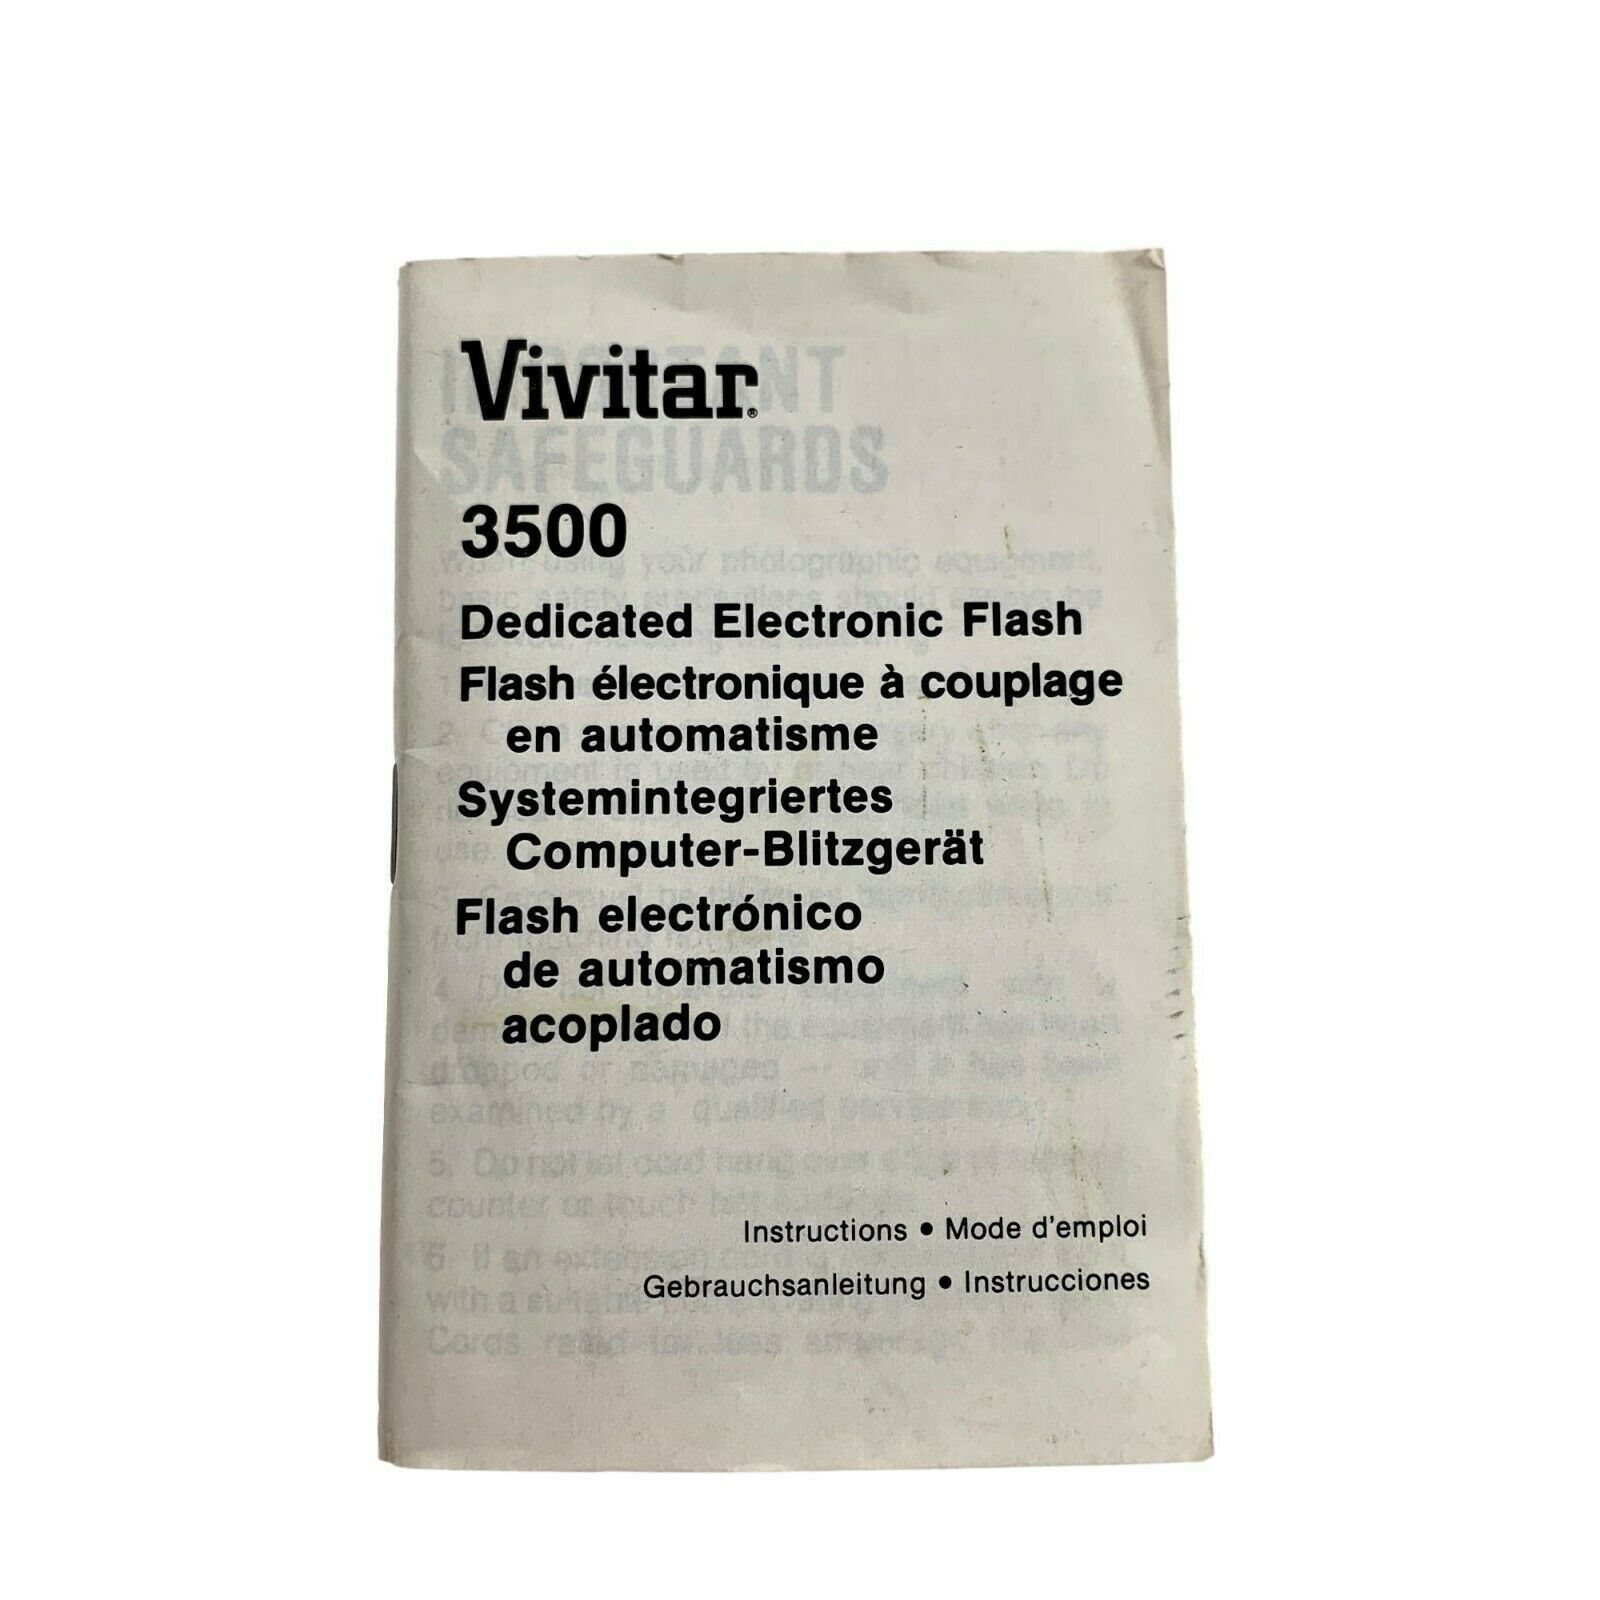 Primary image for Vivitar 3500 Dedicated Electronic Flash Instruction Manual Booklet